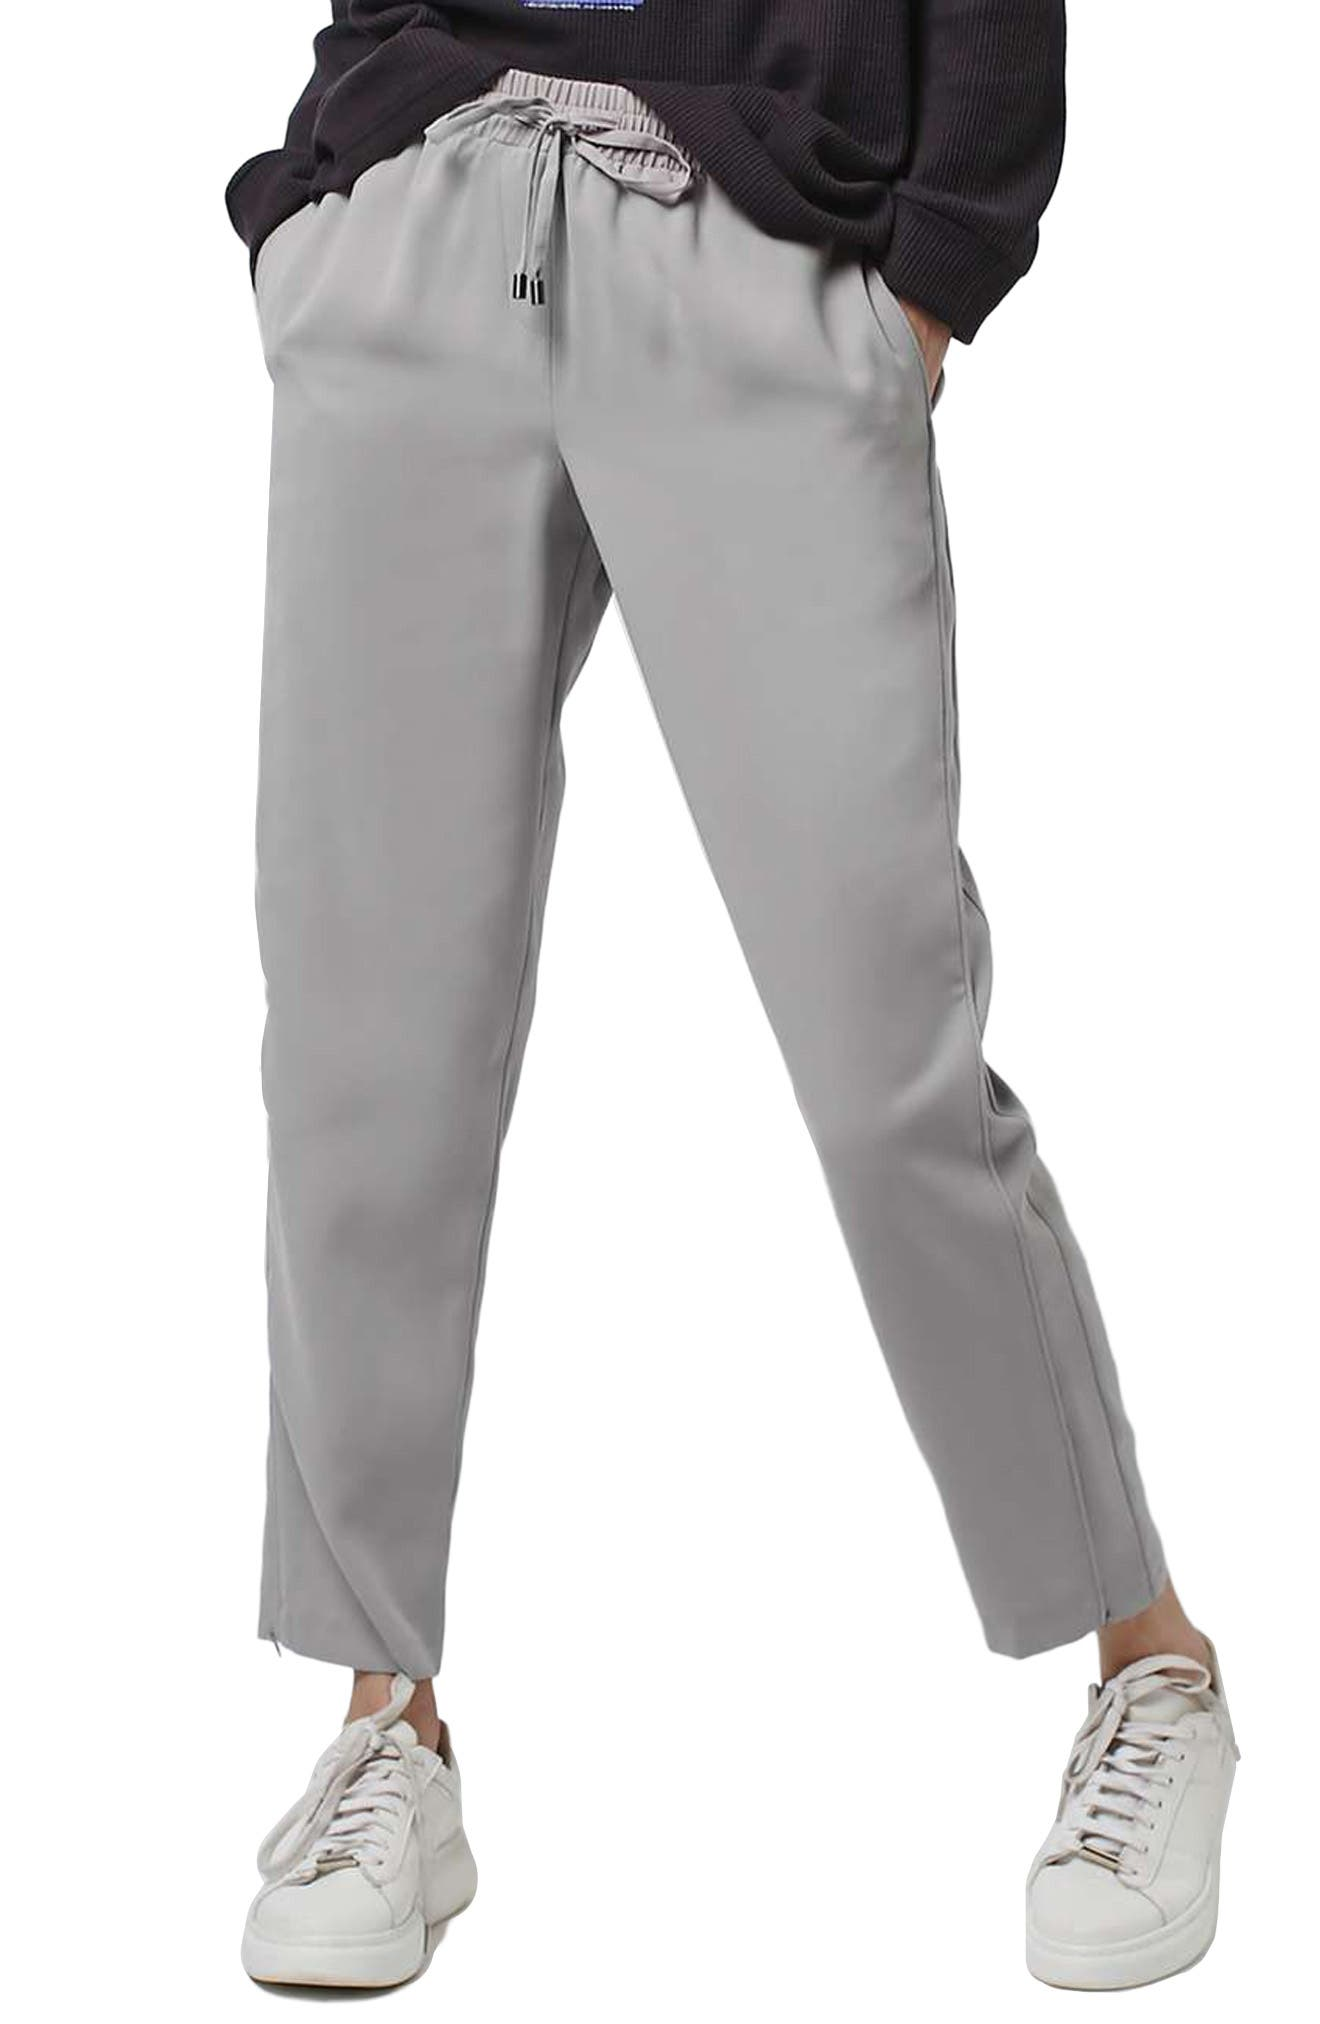 Contrast Piped Ankle Zip Jogger Pants,                             Main thumbnail 1, color,                             020